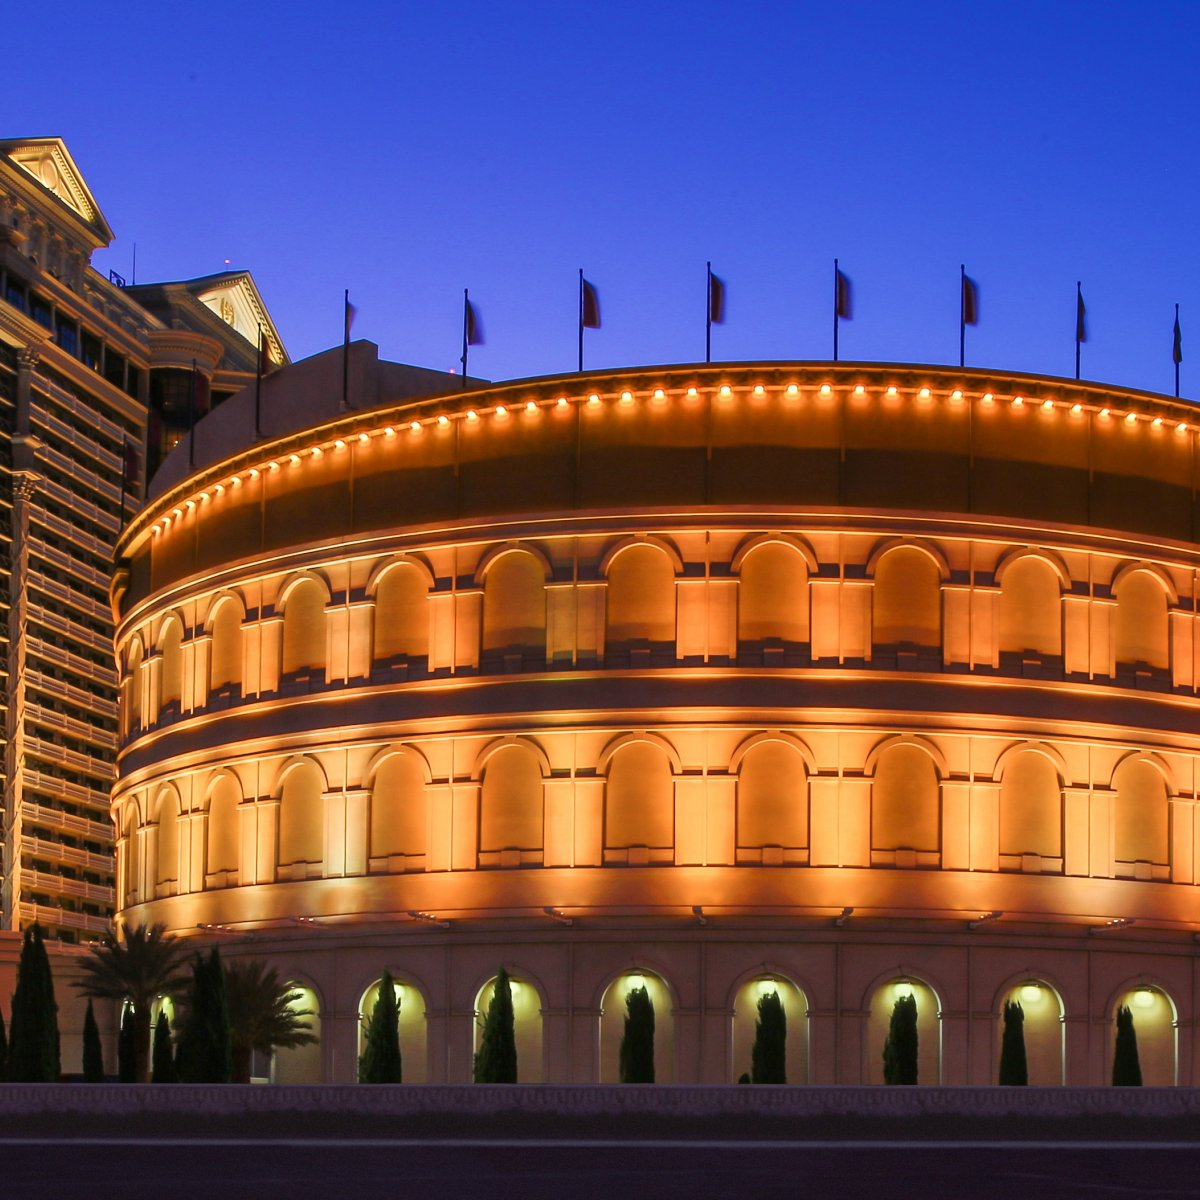 Exterior shot of the Colosseum at night